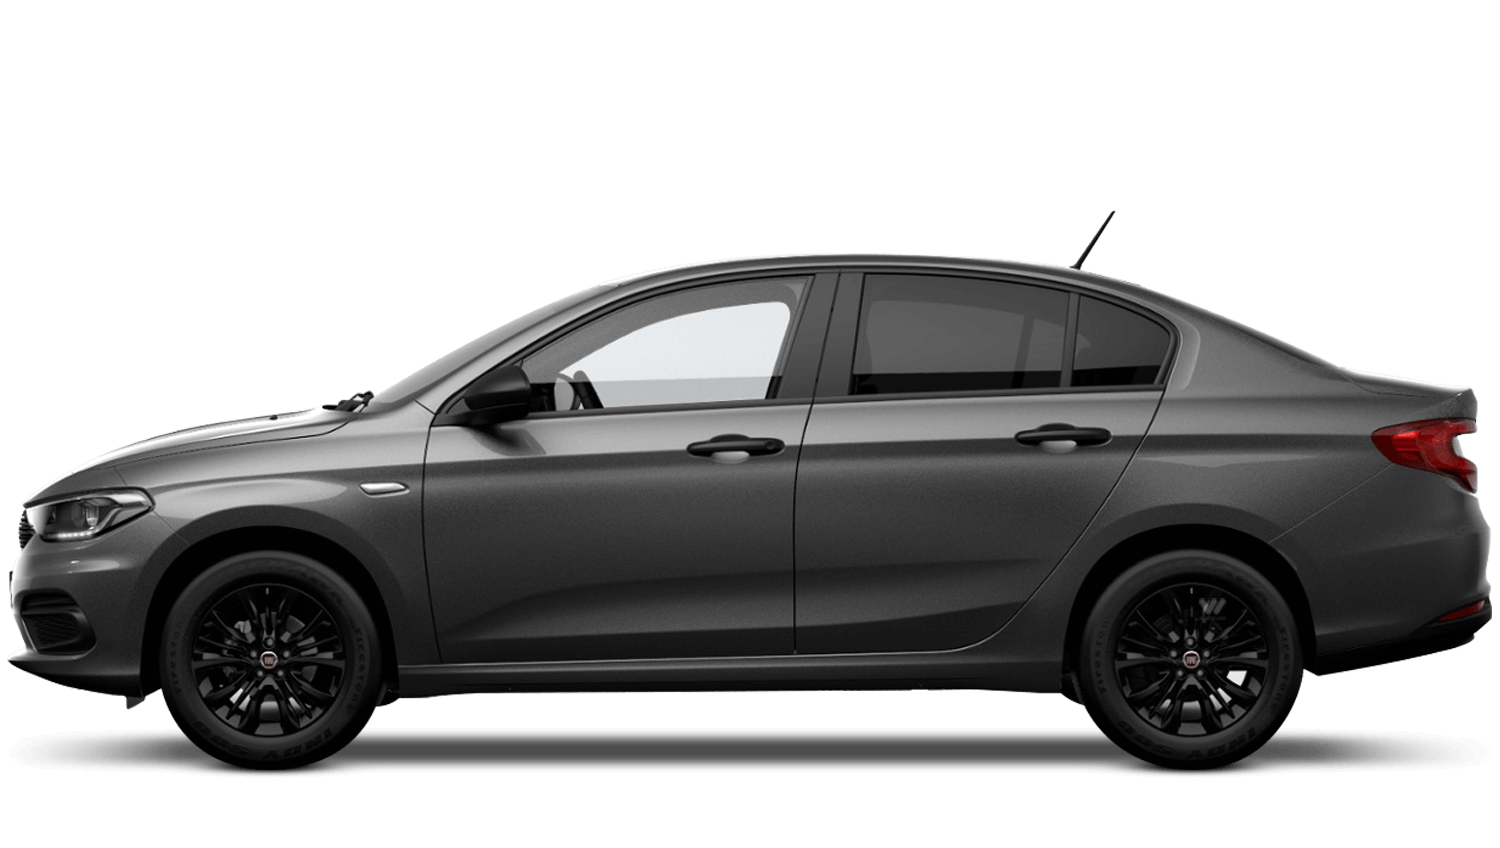 Electroclash Grey (Metallic) FIAT Tipo Saloon